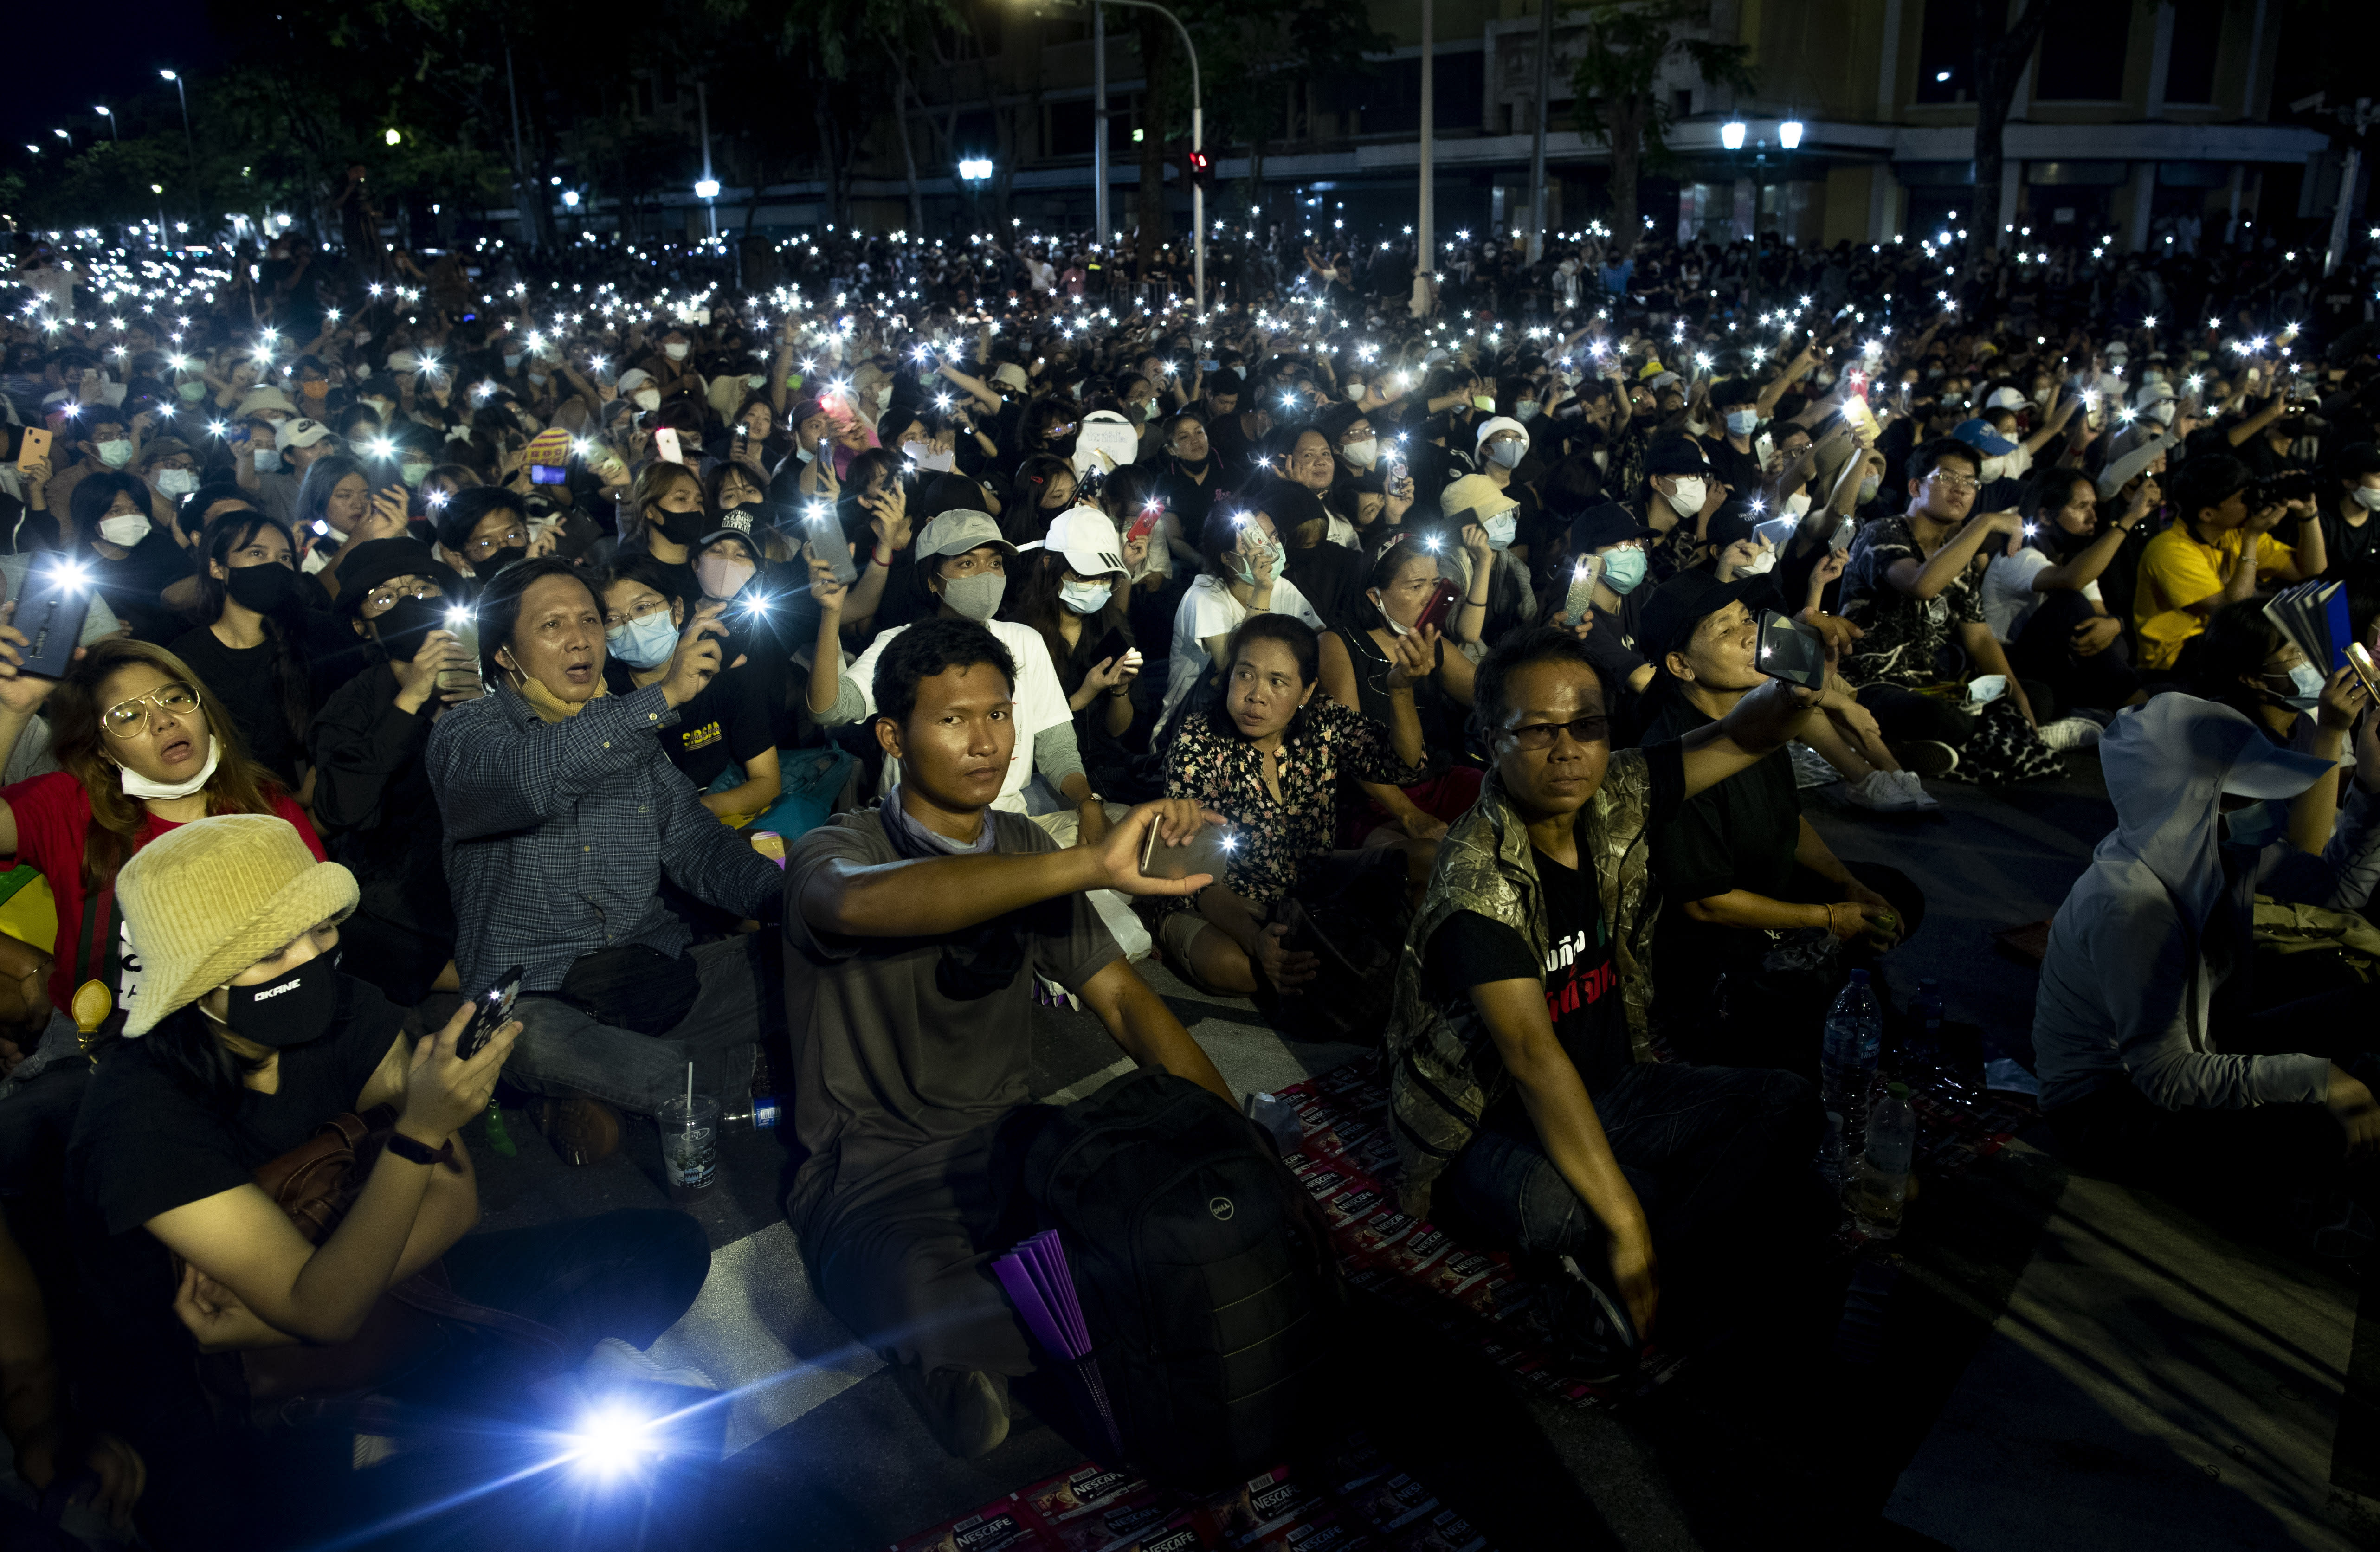 Pro-democracy activities display mobile phones with flash lights on during a protest at Democracy Monument in Bangkok, Thailand, Sunday, Aug, 16, 2020. A two-day rally planned for this weekend is jangling nerves in Bangkok, with apprehension about how far student demonstrators will go in pushing demands for reform of Thailand's monarchy and how the authorities might react. More than 10,000 people are expected to attend the Saturday-Sunday event. (AP Photo/Gemunu Amarasinghe)